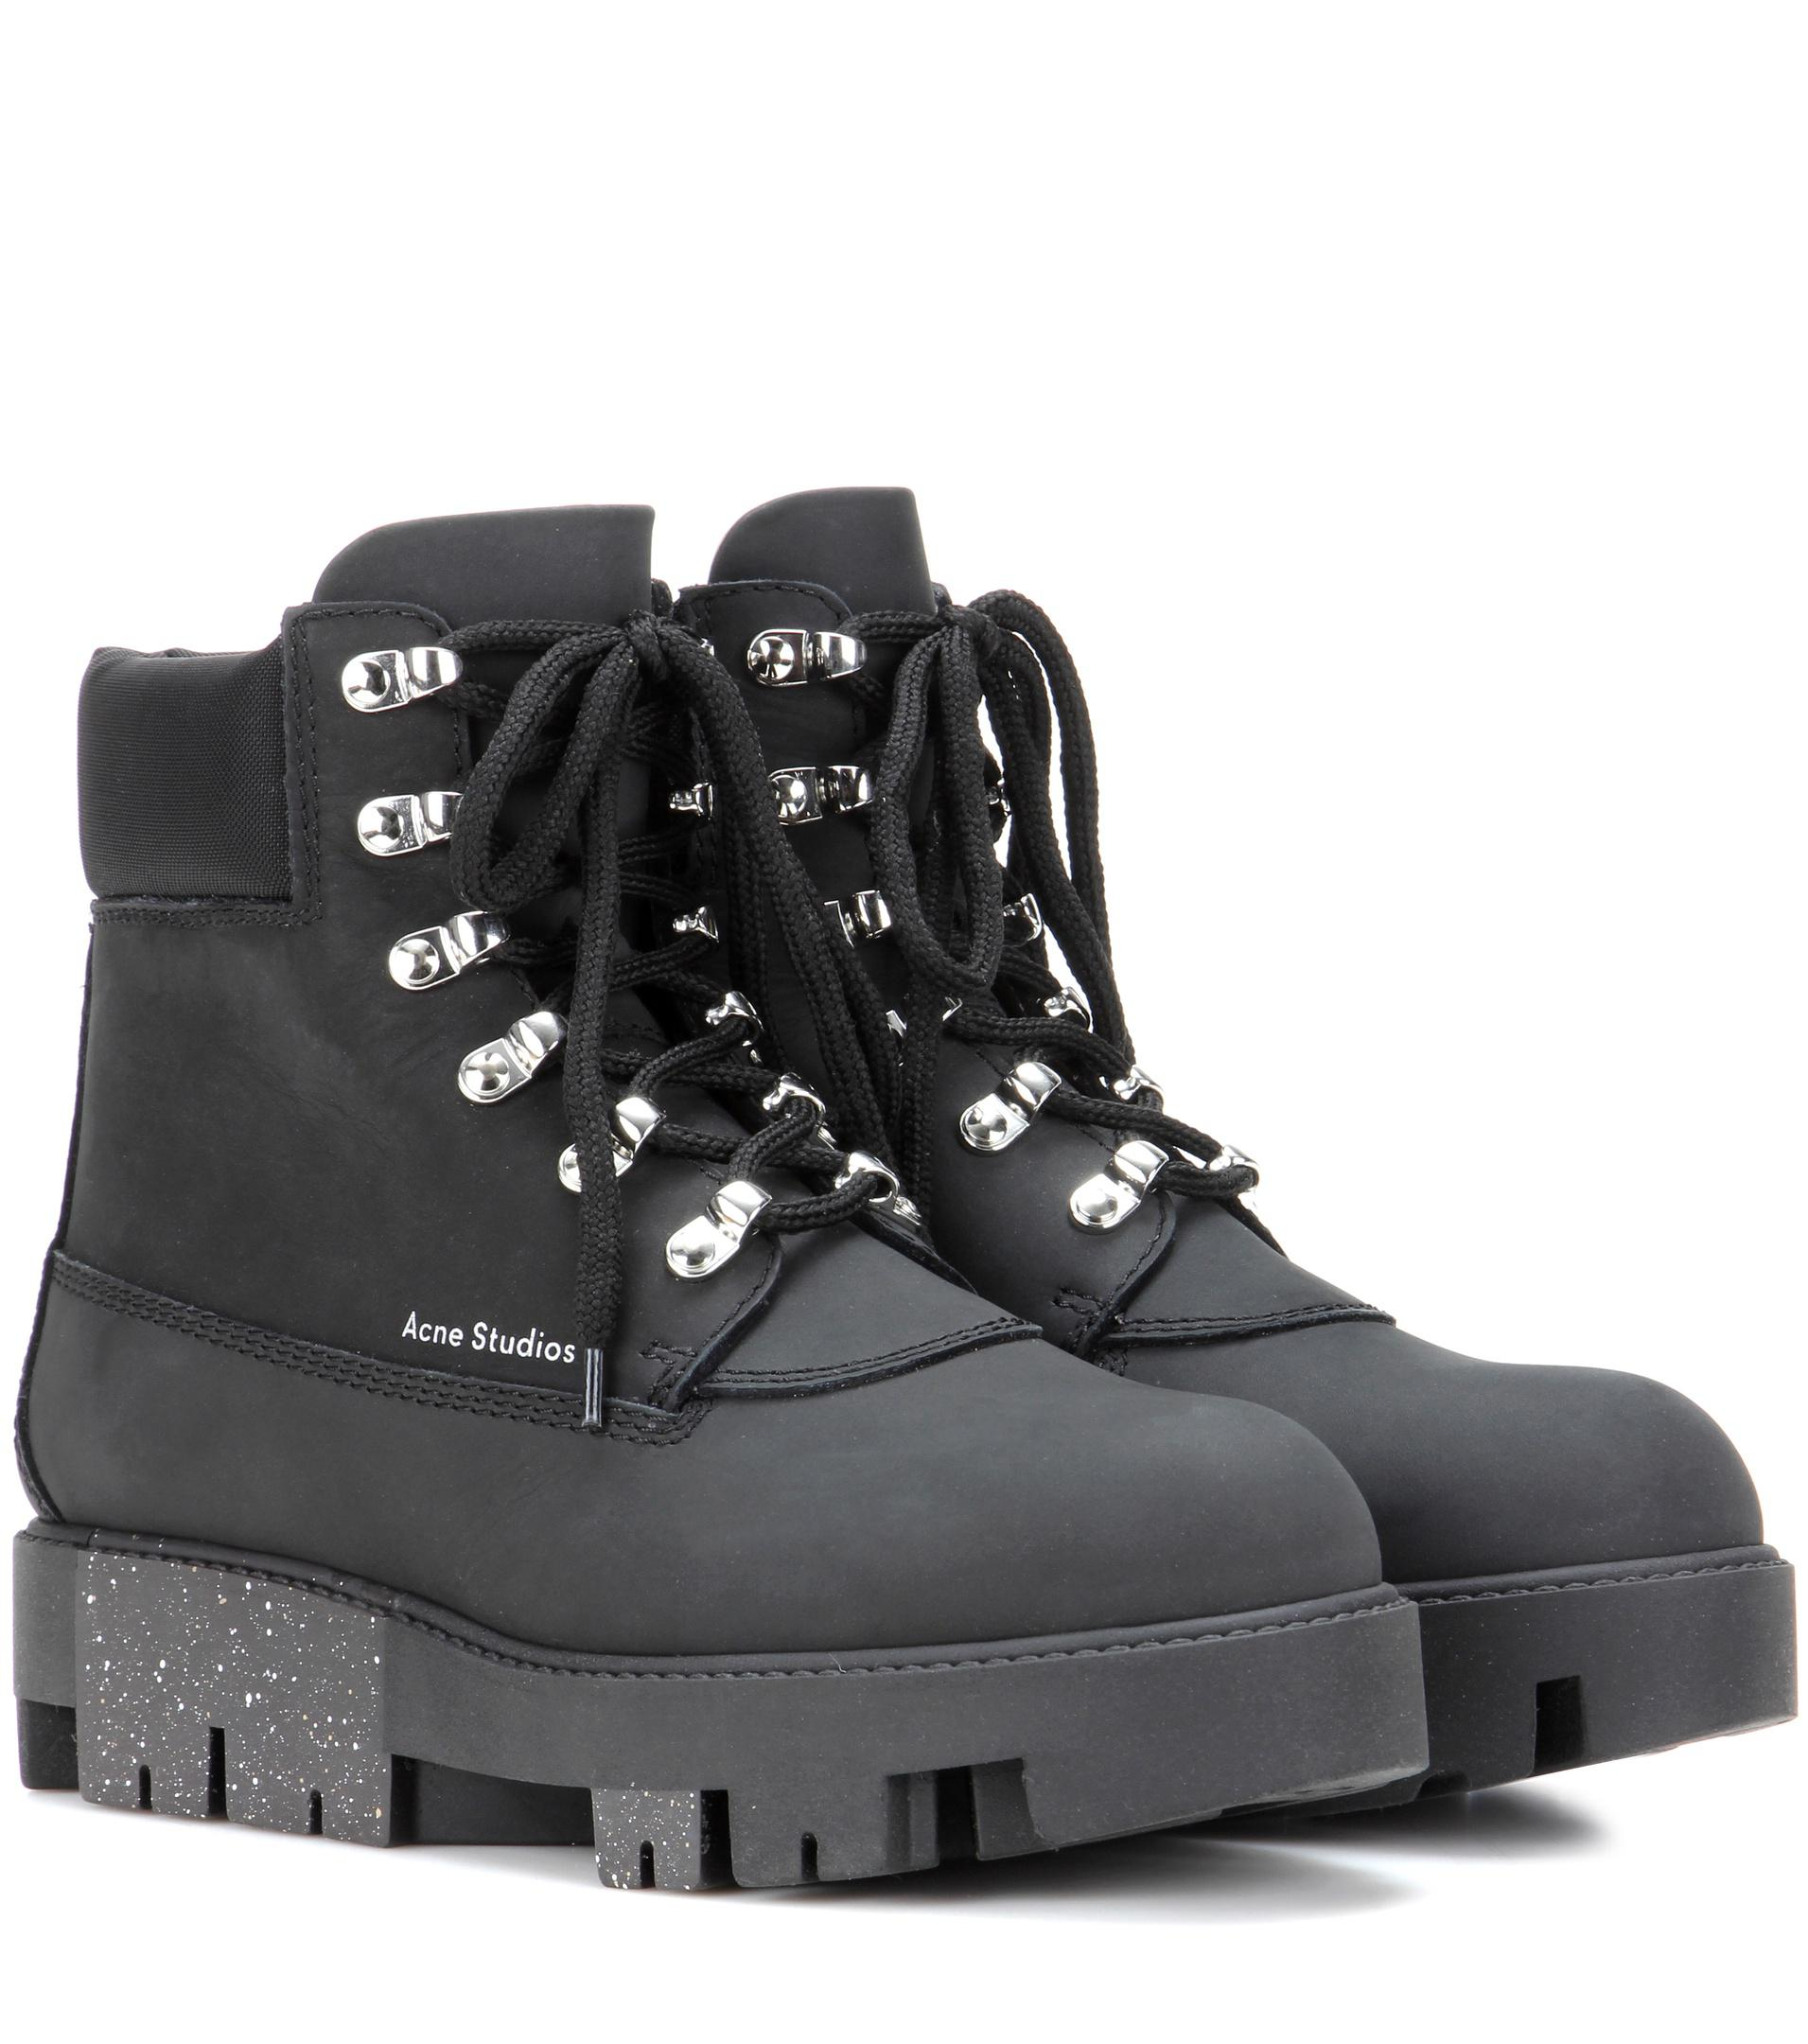 a54233c1821 Acne Black Telde Leather Ankle Boots